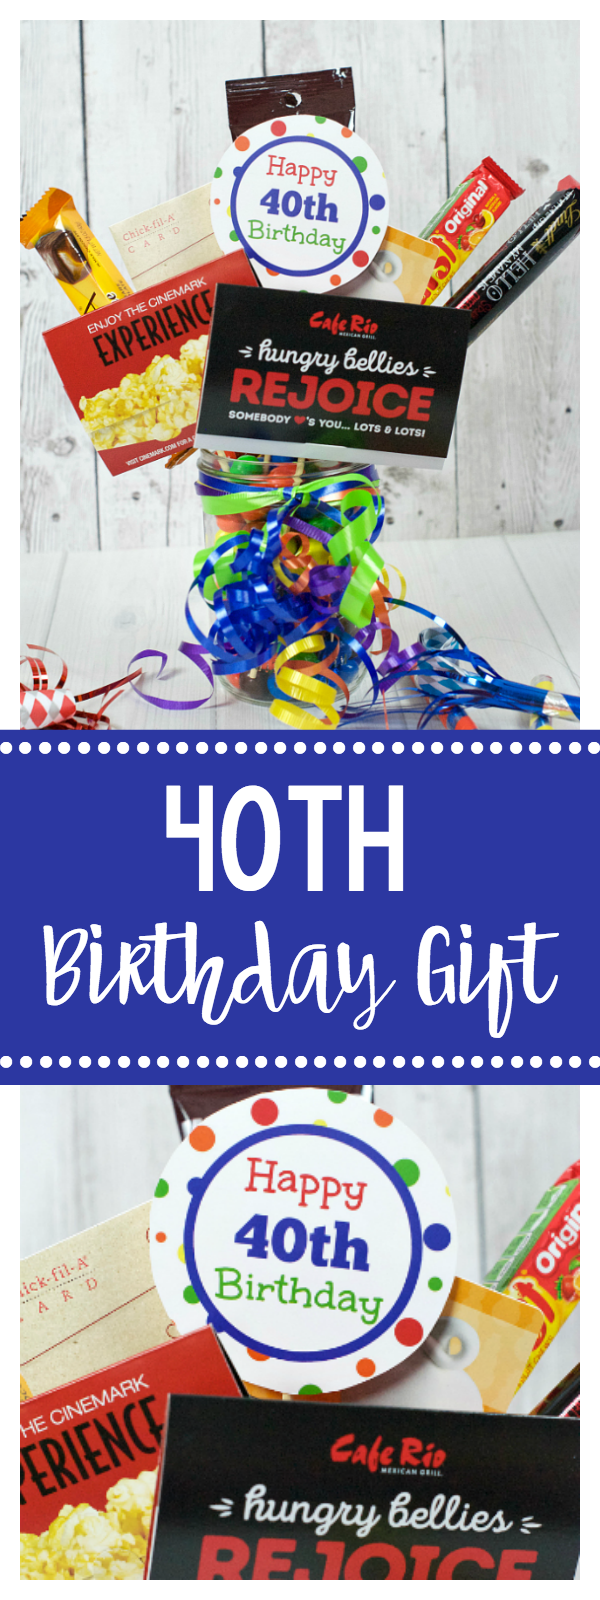 40th Birthday Gift Idea-Fun Gift Card Bouquet